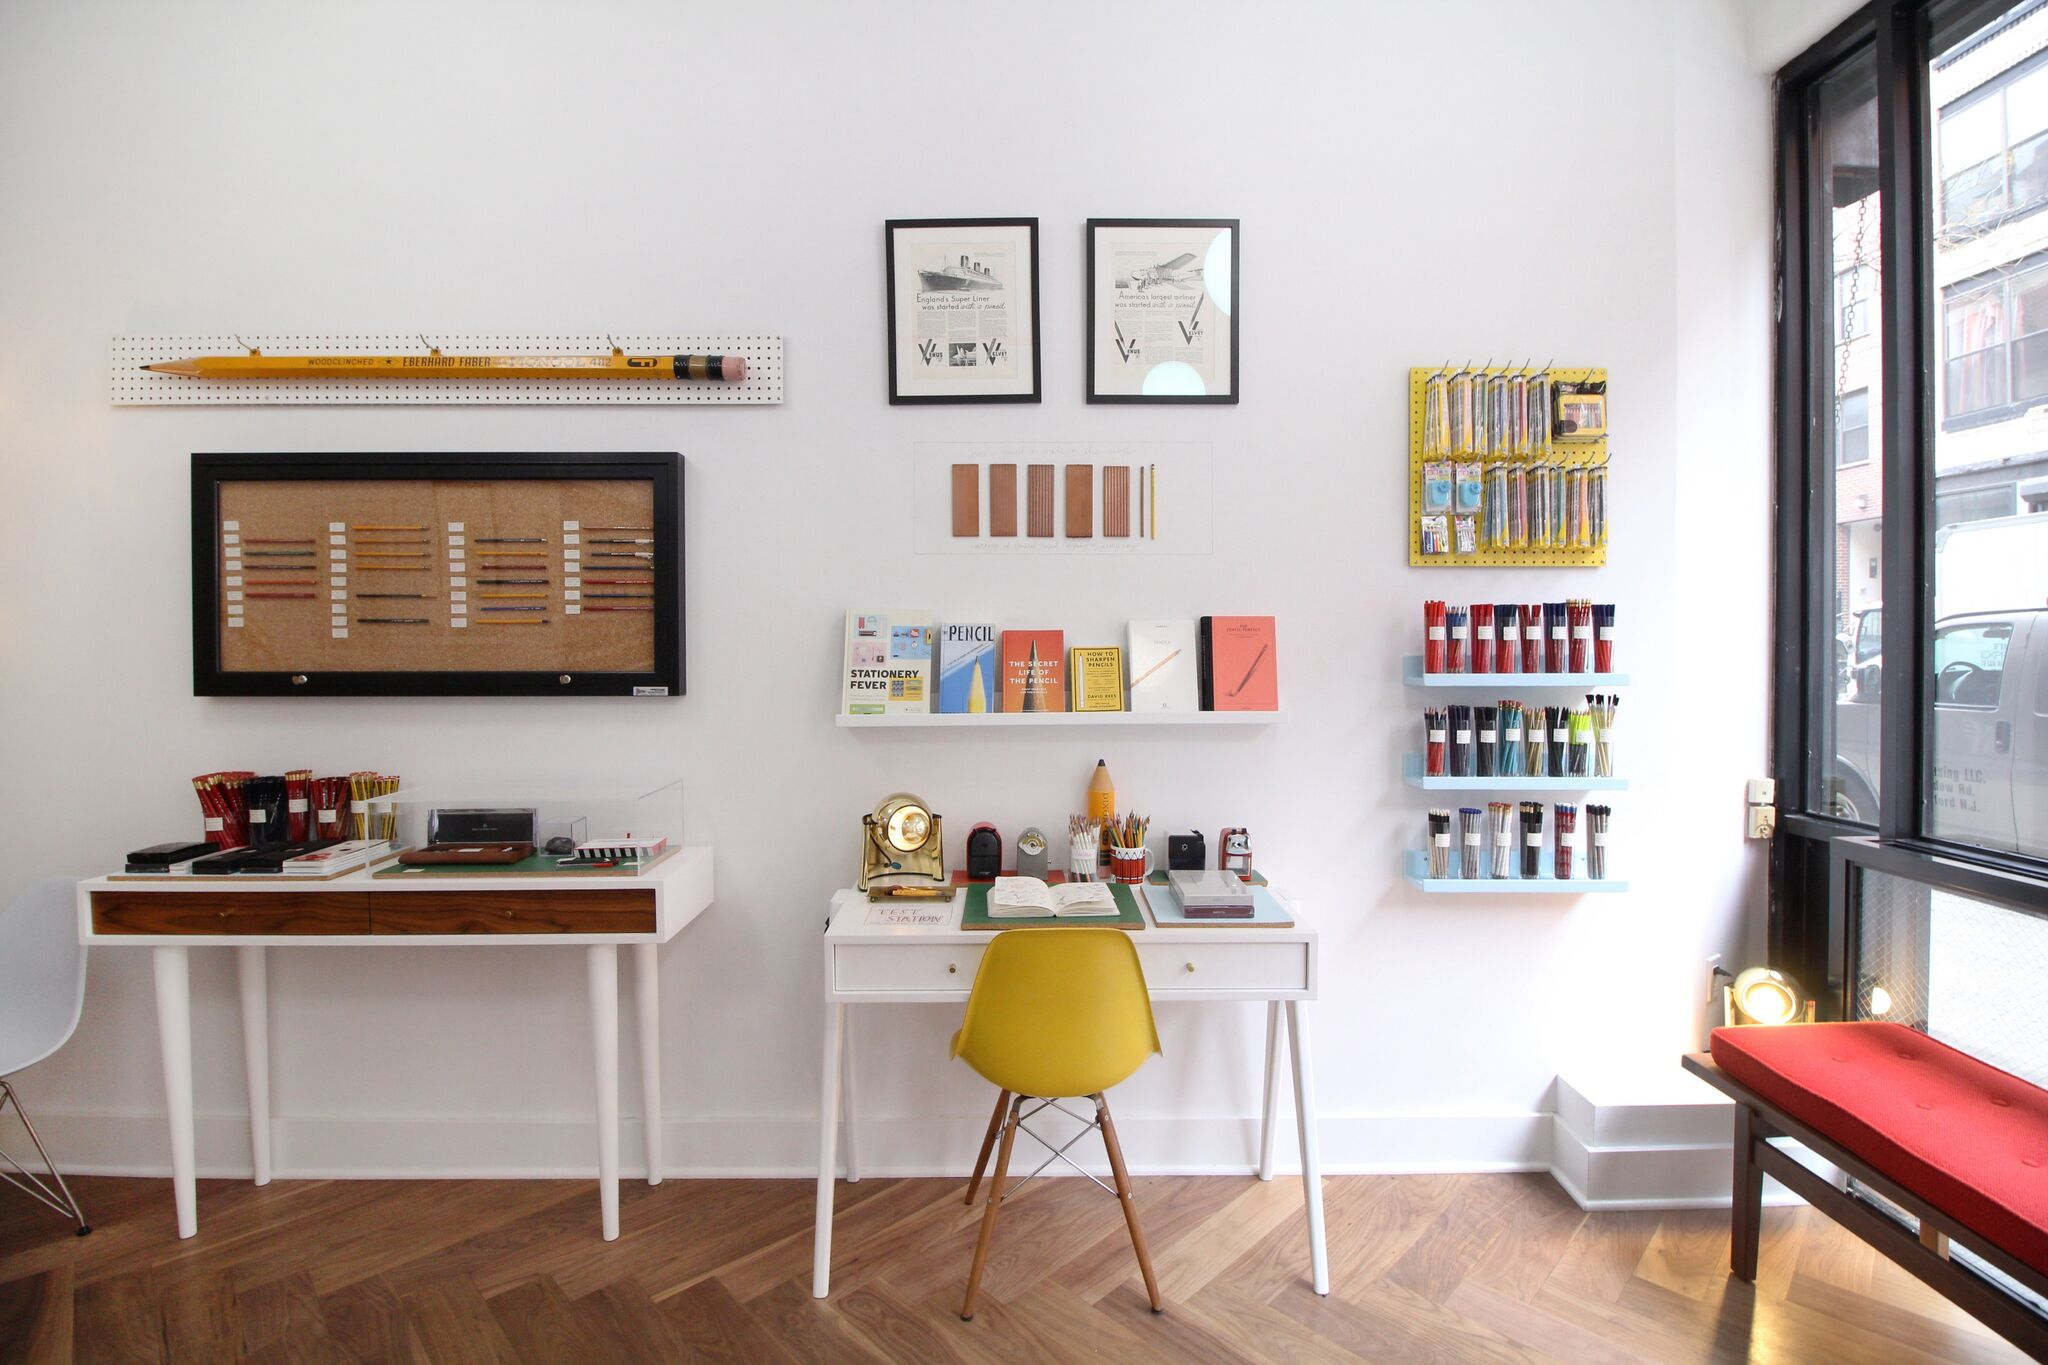 Caroline Weaver's shop in Orchard Street, NYC, is a minimalist heaven for all pencil lovers. © Caroline Weaver, CW Pencil Enterprise